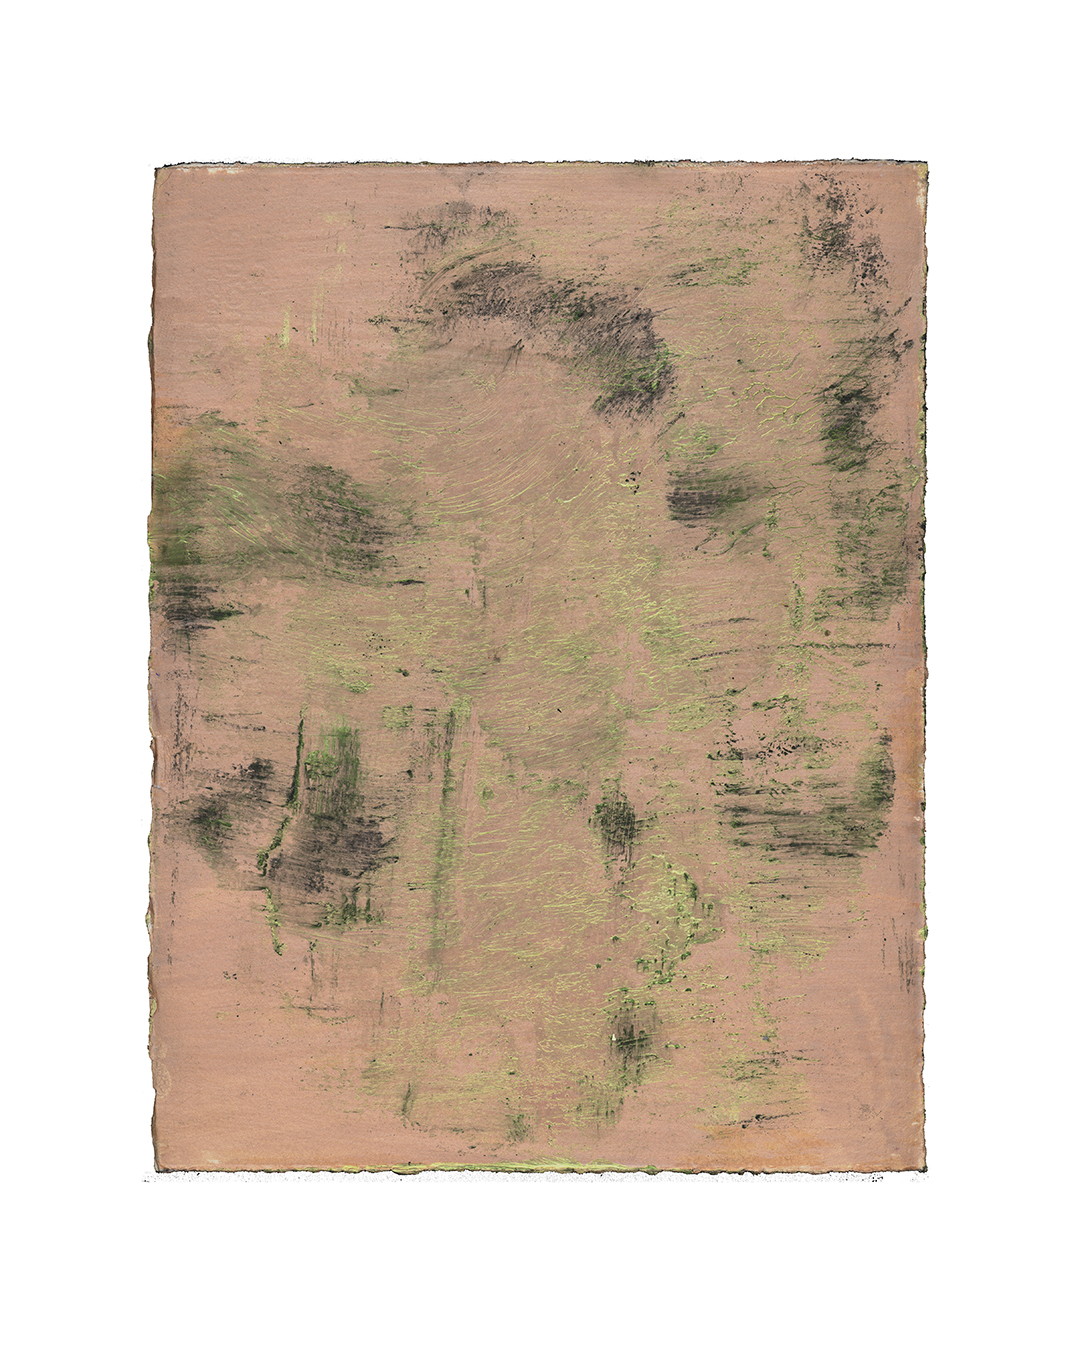 Piet Dieleman, untitled, 2020, painting, pigment, acrylic paint on paper, 380 x 285 mm, €930